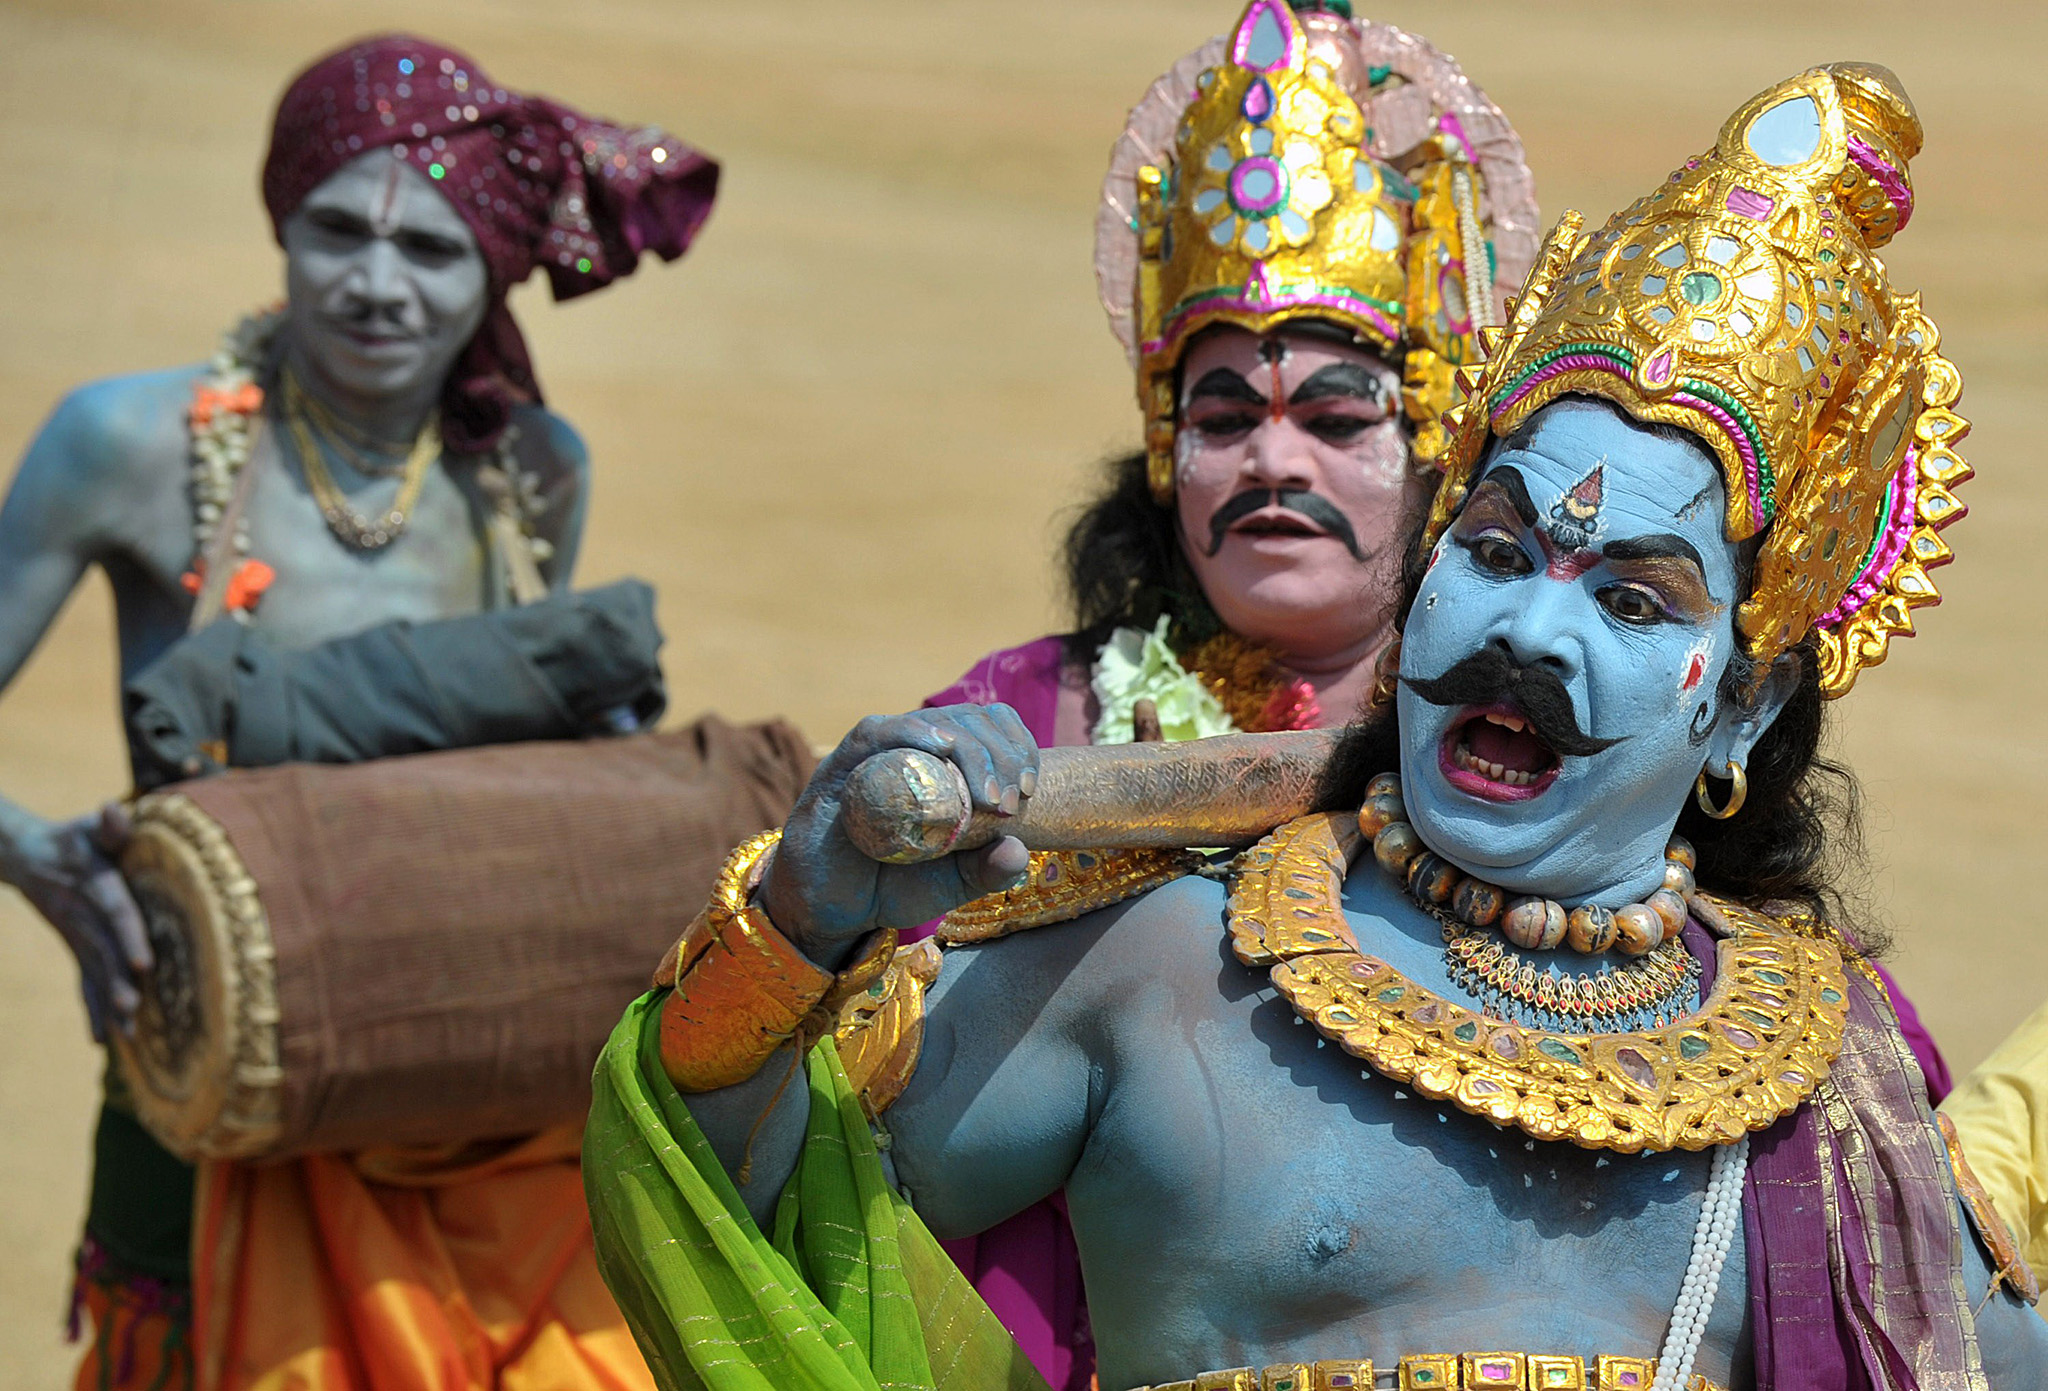 Indian performers dance during the state...Indian performers dance during the state's formation day celebrations, marking one year since the formation of the new state in Secunderabad, the twin city of Hyderabad, on June 2, 2015.The 10 districts of the southern Indian state of Telangana was formed as India's 29th state on June 2, 2014 after it was carved out of Andhra Pradesh. AFP PHOTO/ Noah SEELAMNOAH SEELAM/AFP/Getty Images